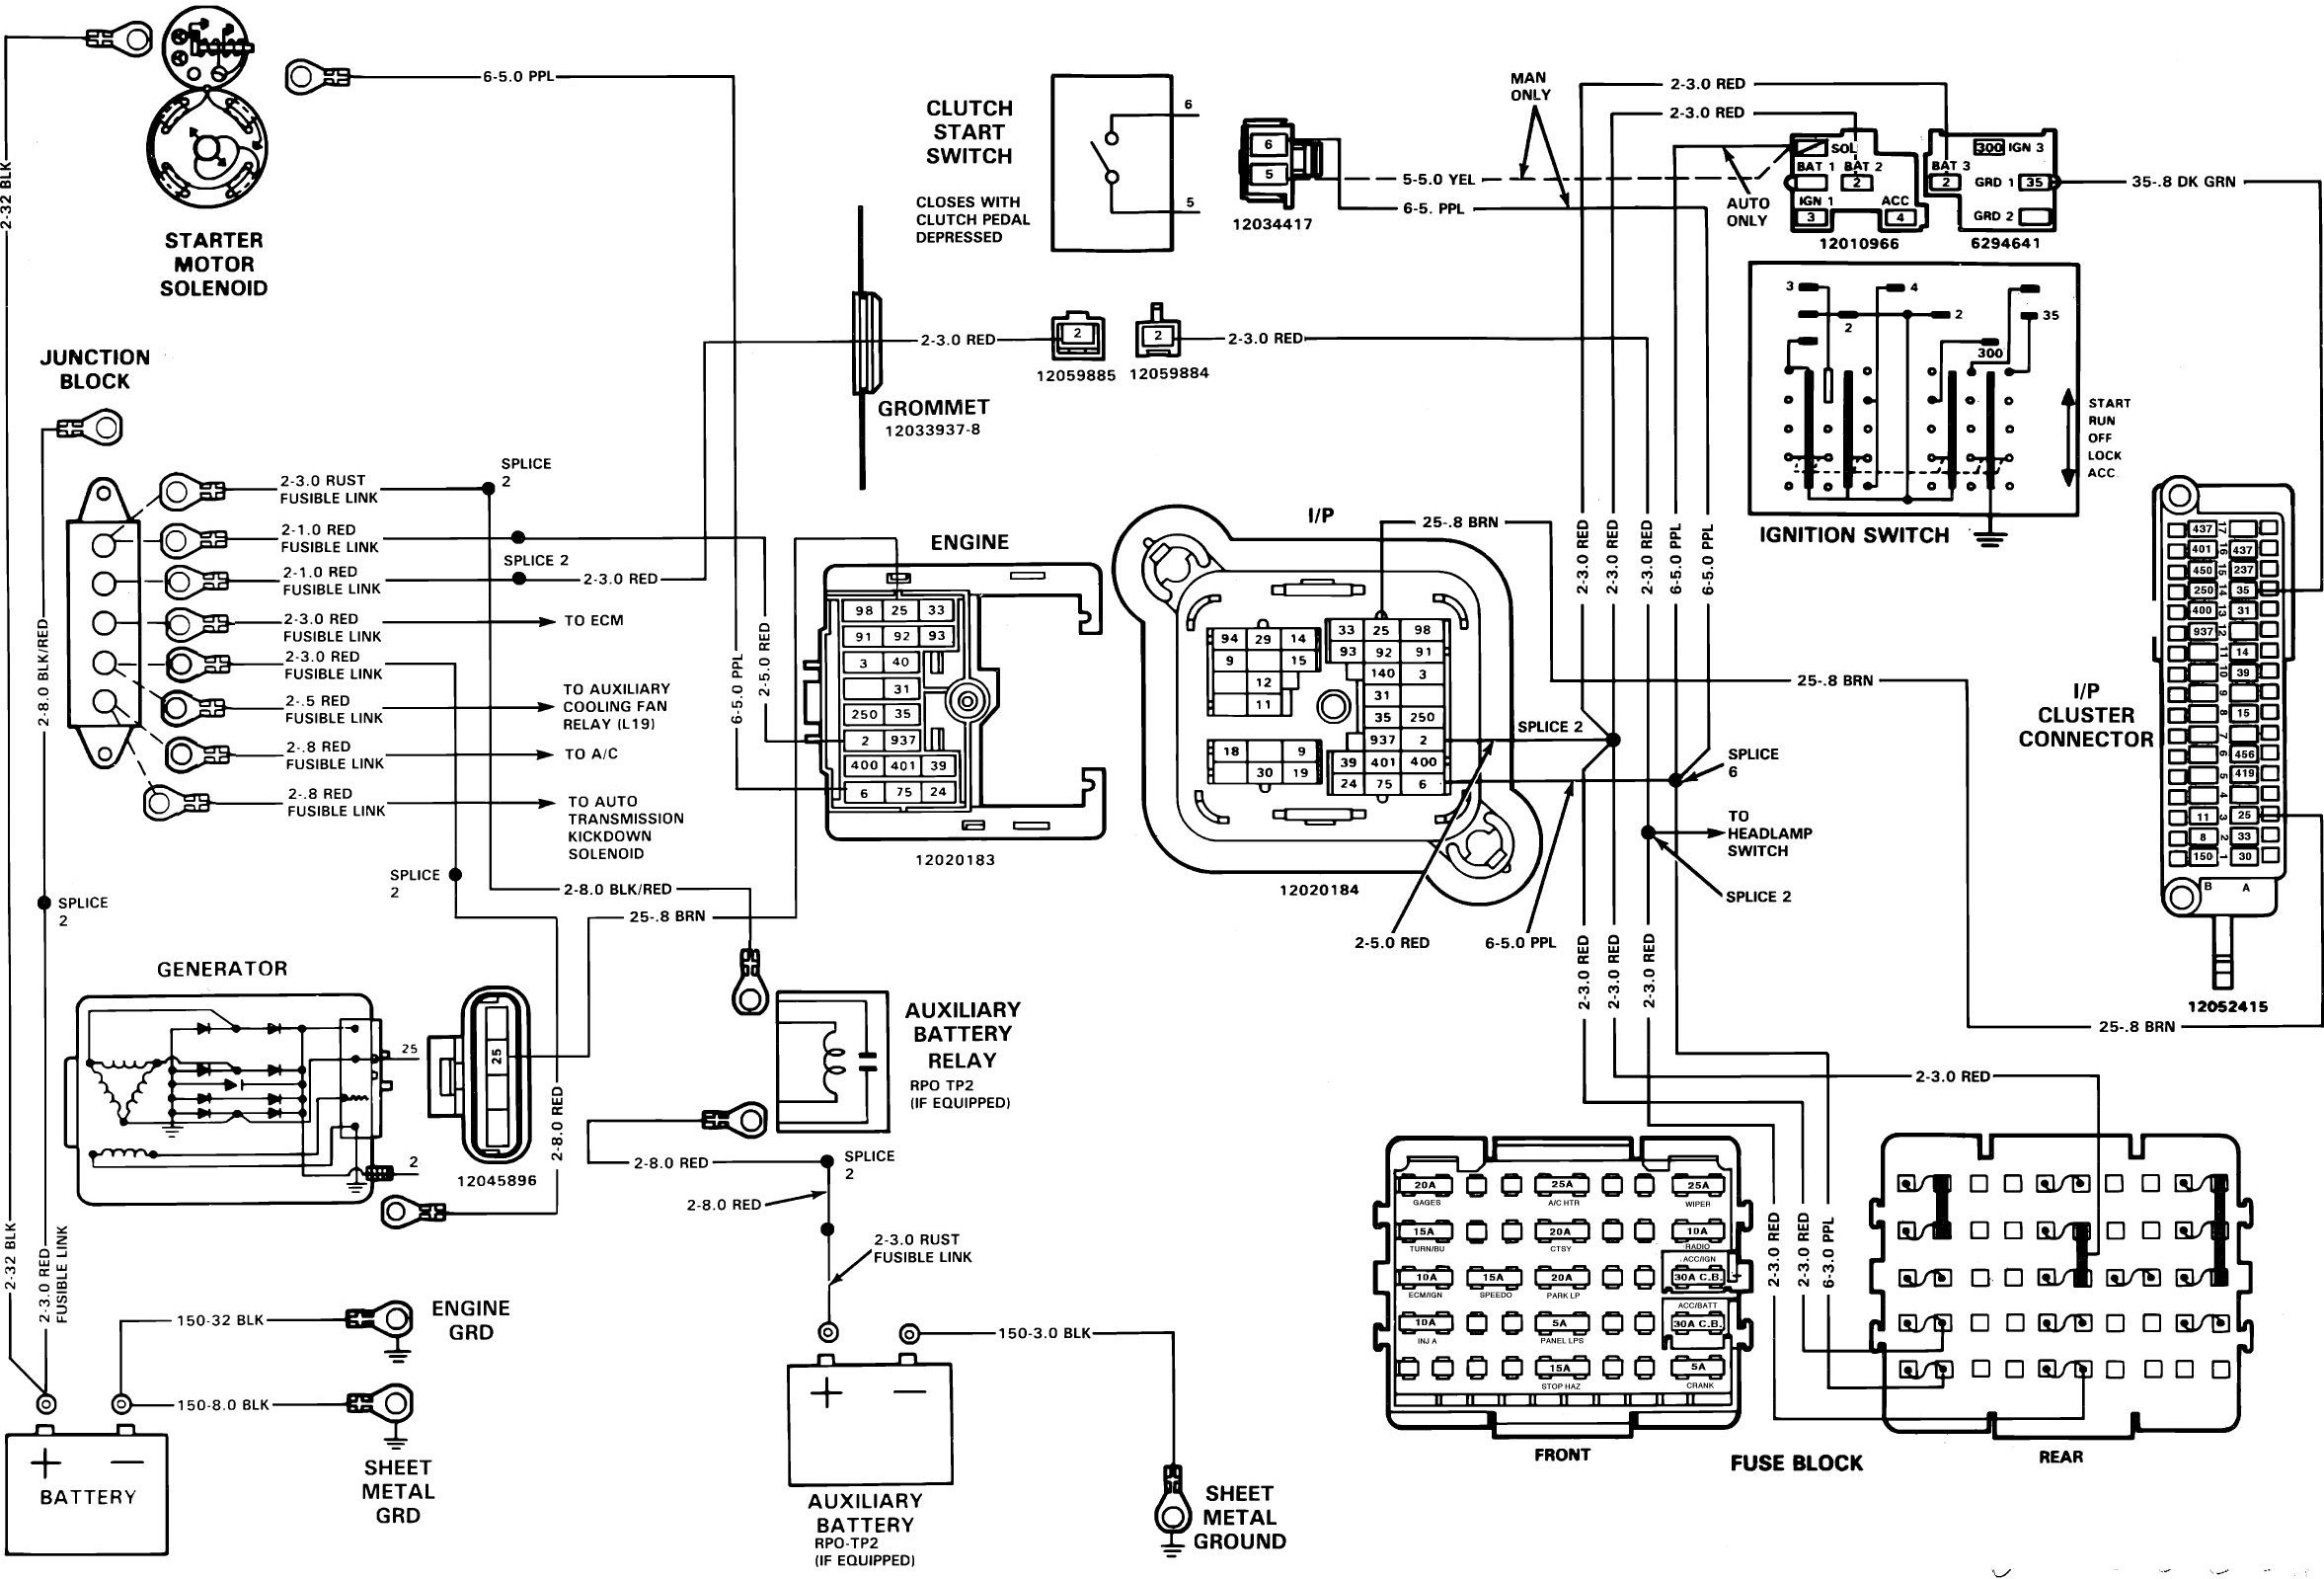 truck engine diagram 1989 chevrolet c1500 wiring diagram 1989 chevy rh detoxicrecenze com 1988 chevy silverado wiring diagram 1988 chevy silverado wiring diagram